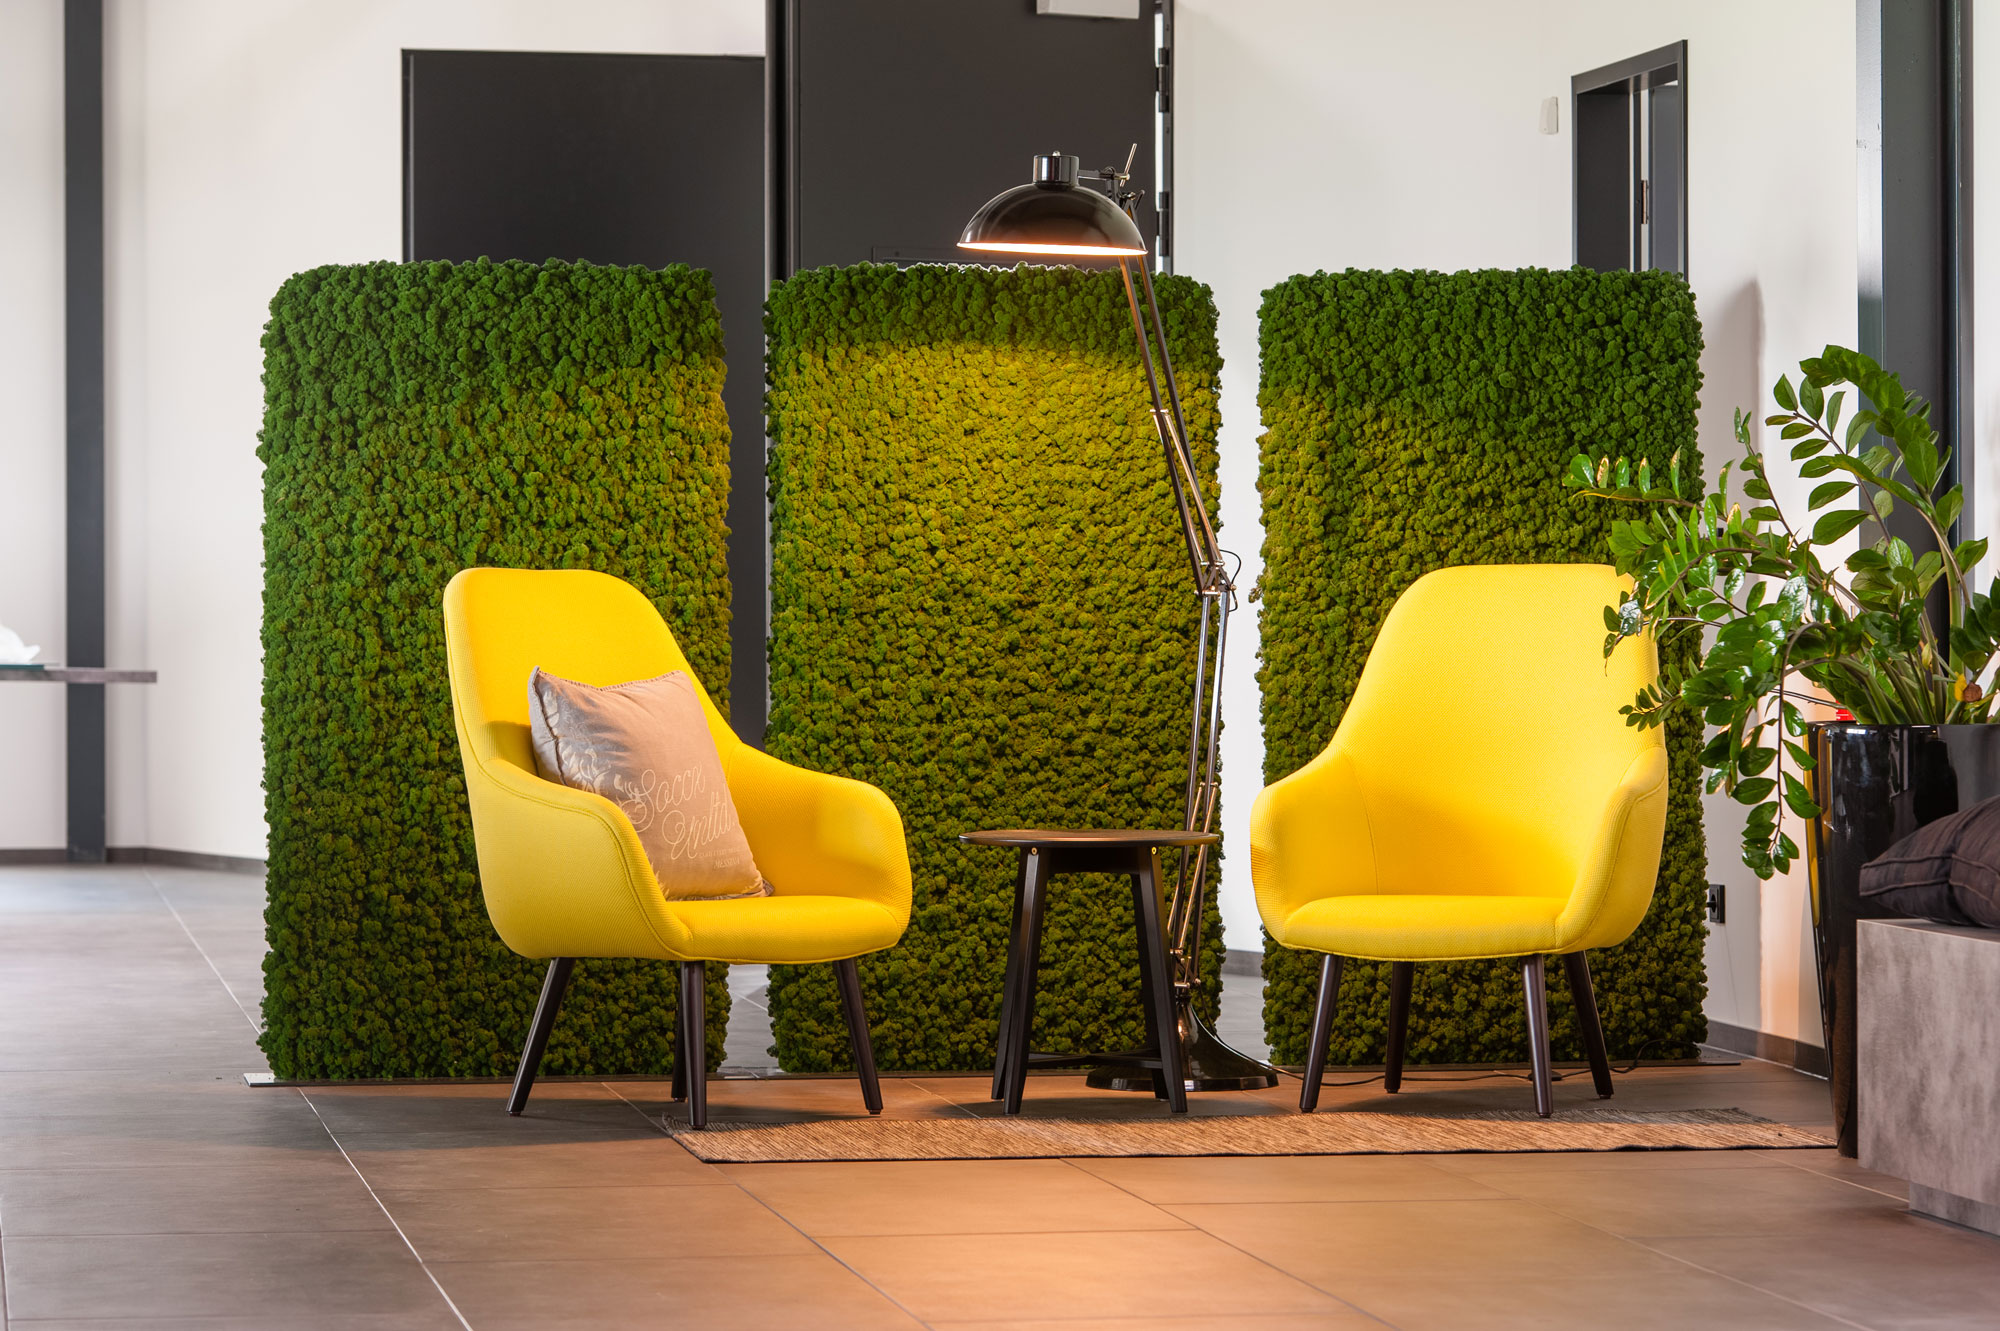 Freund moss manufactory functionally acoustic room dividers with moss walls in a calming office environment